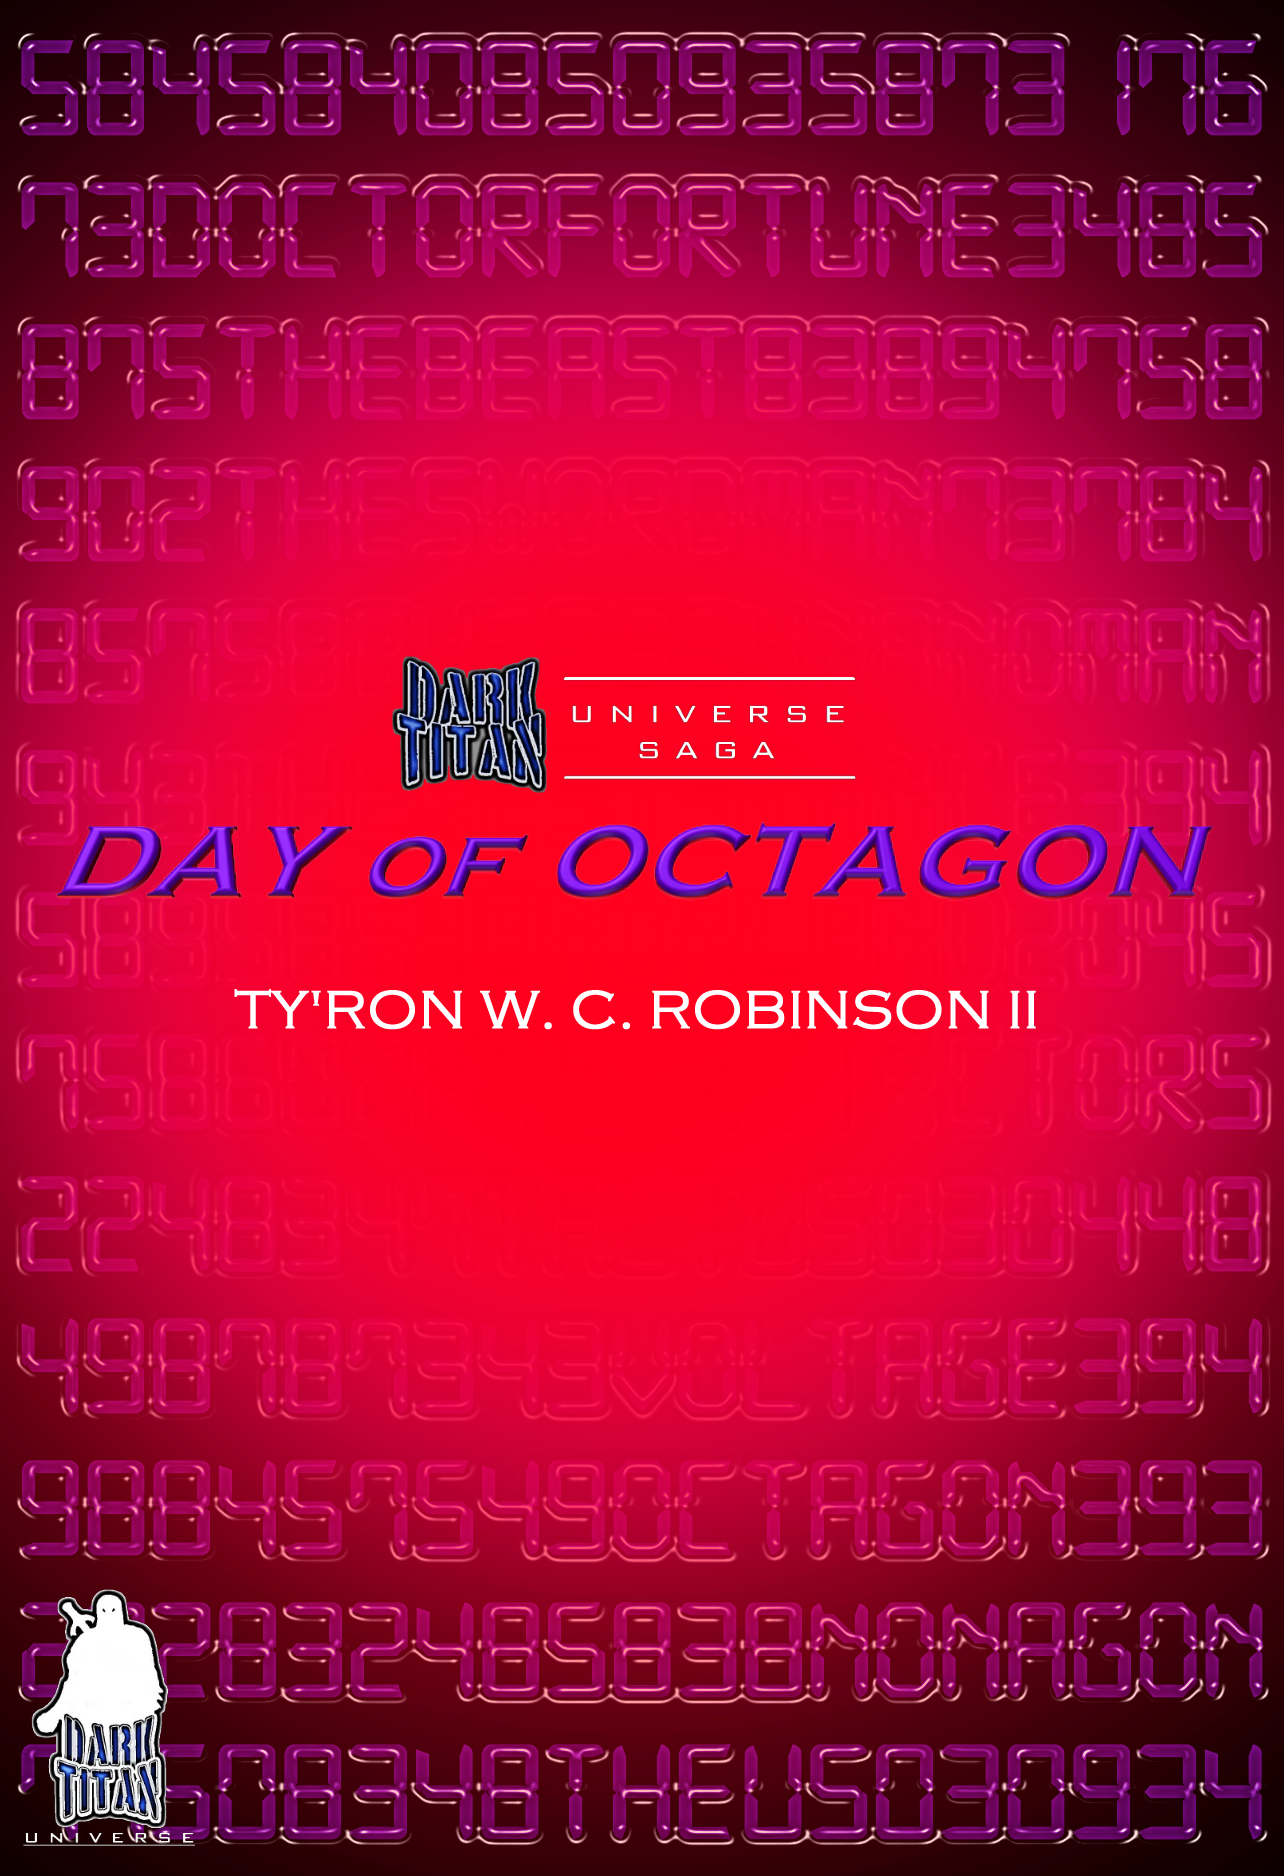 Day of Octagon - Concept Cover Full with DTU Logo.png